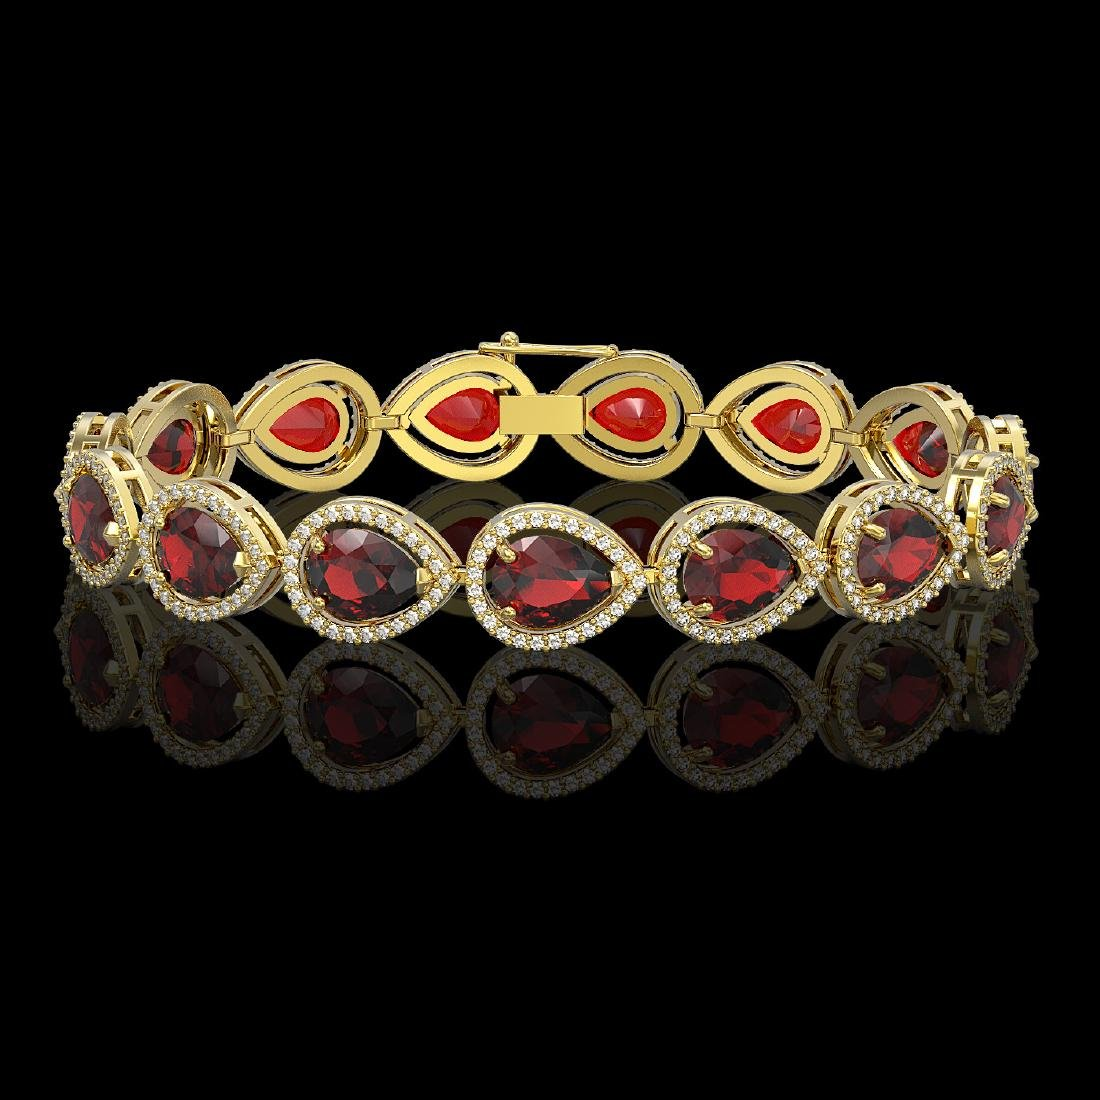 17.45 CTW Garnet & Diamond Halo Bracelet 10K Yellow